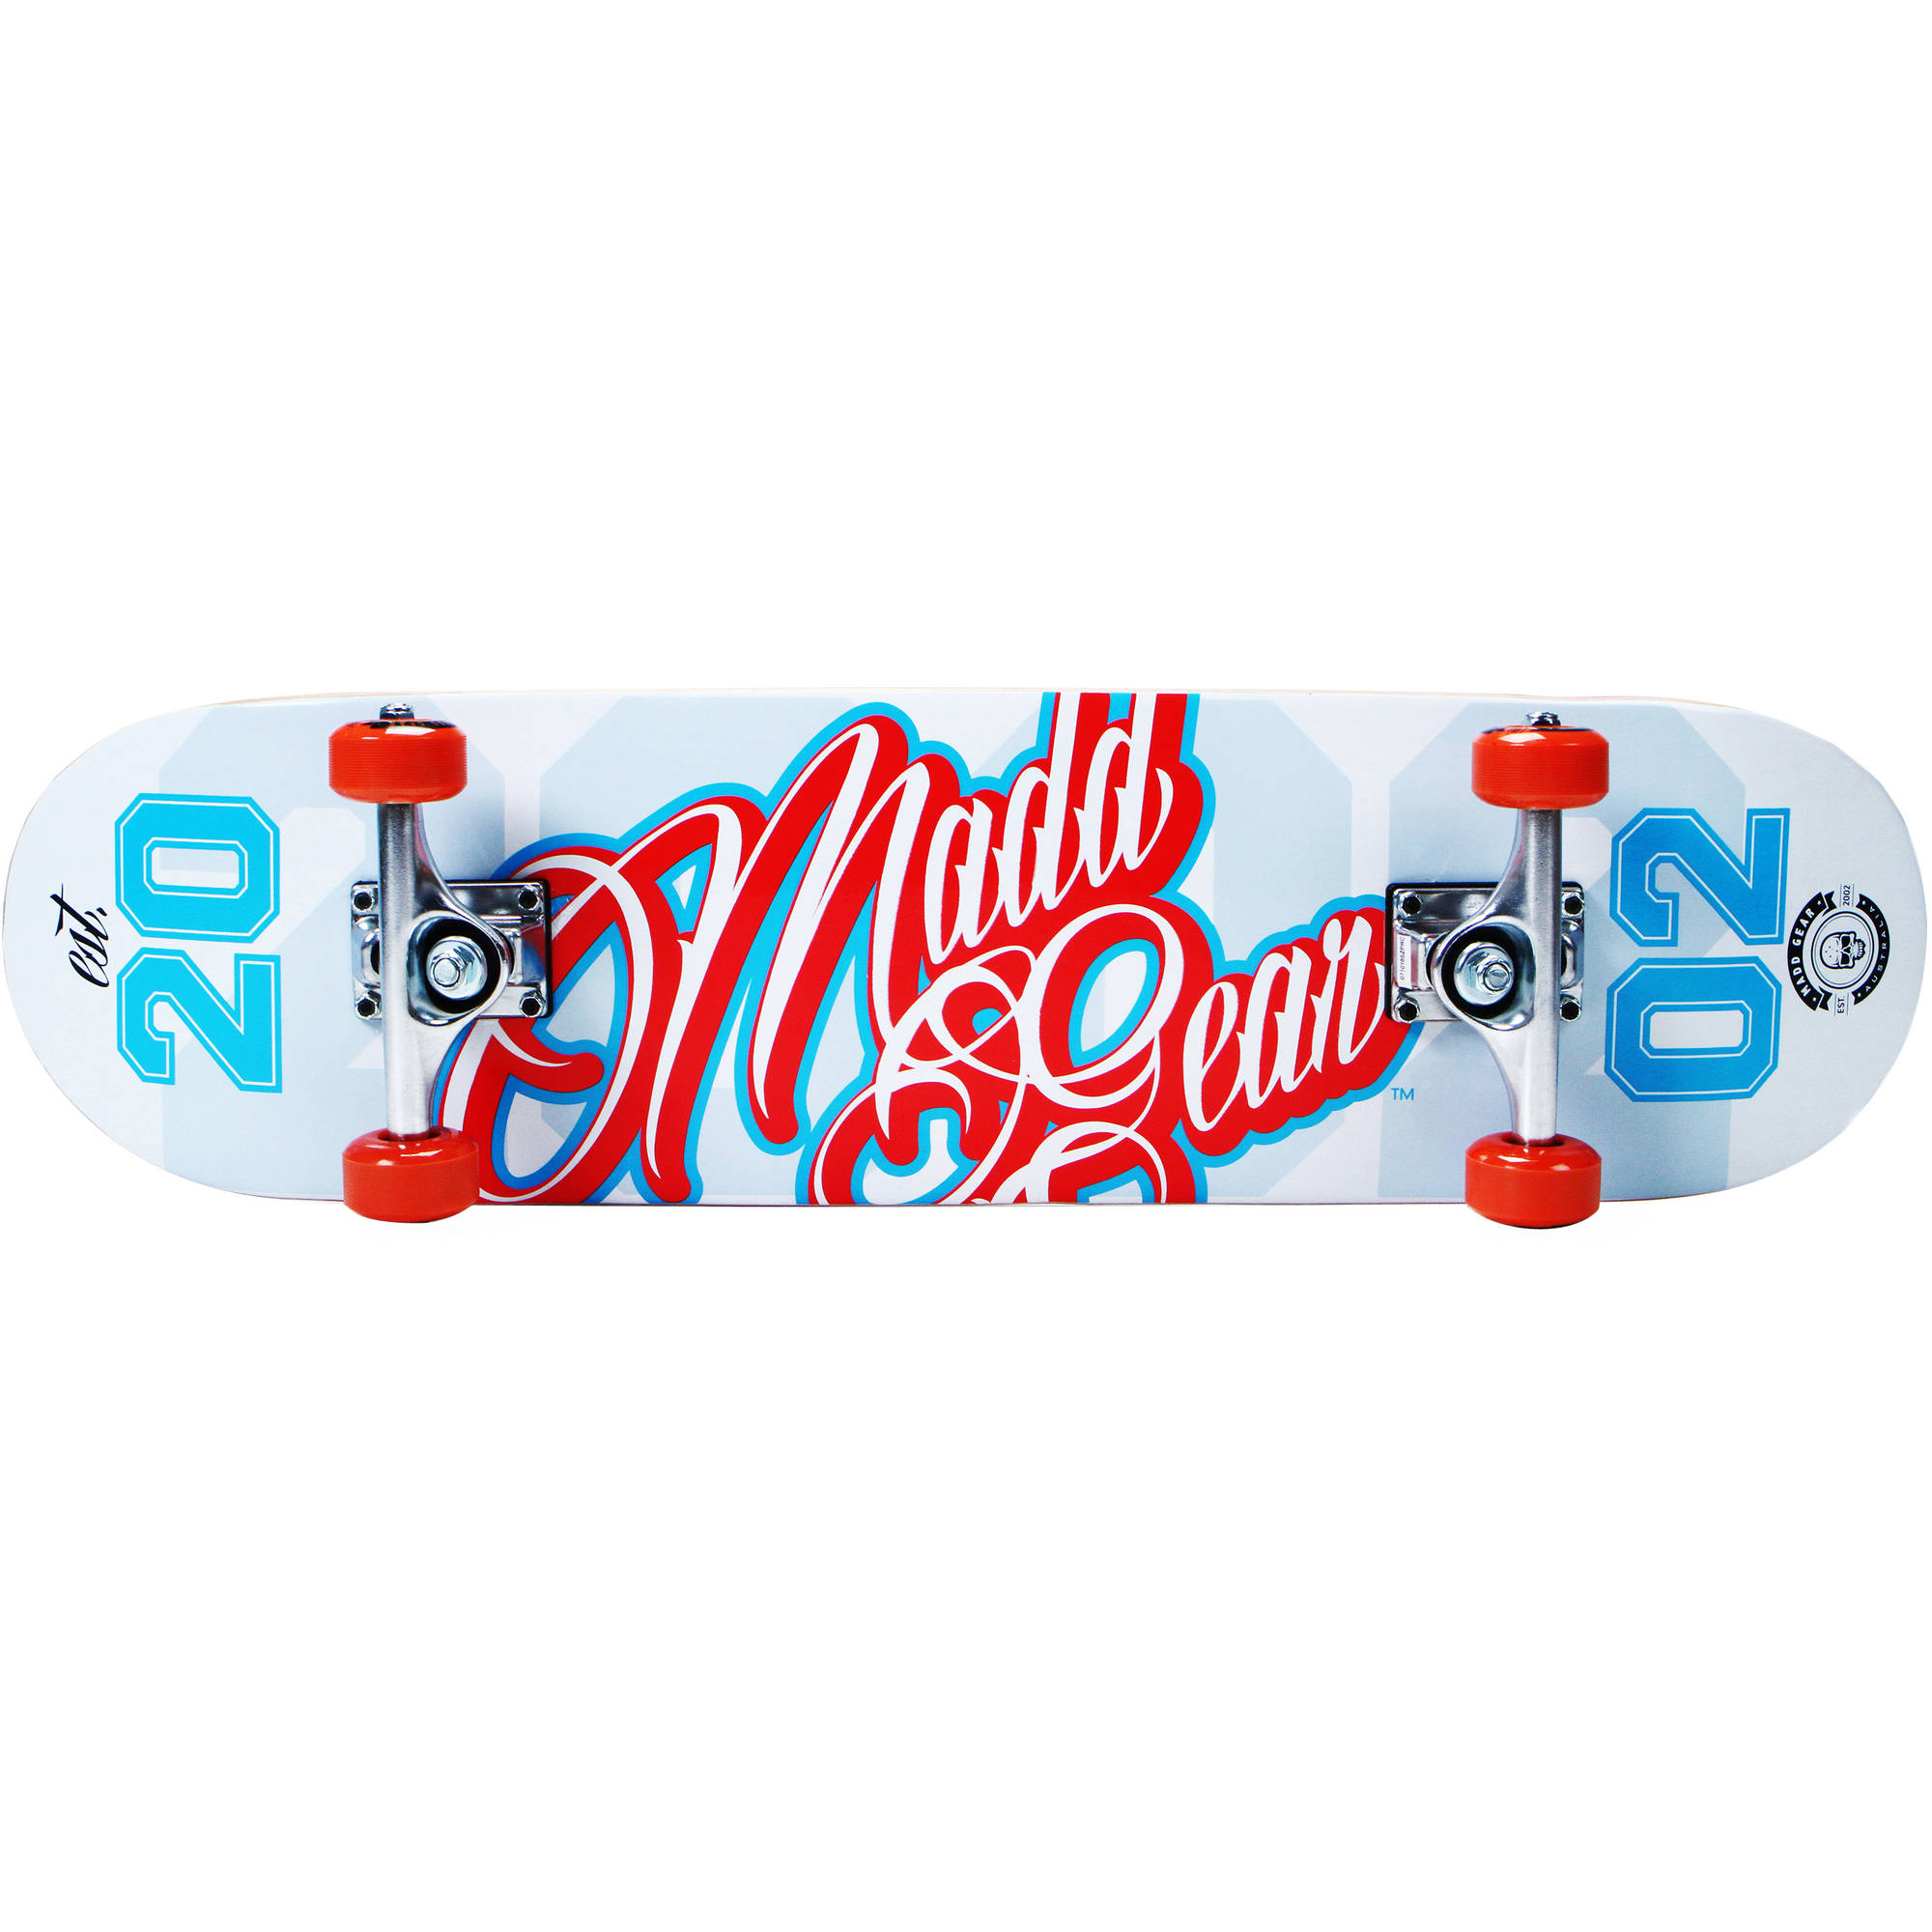 "Madd Gear Pro 31"" Complete Skateboard - Gameplay Red/Blue"